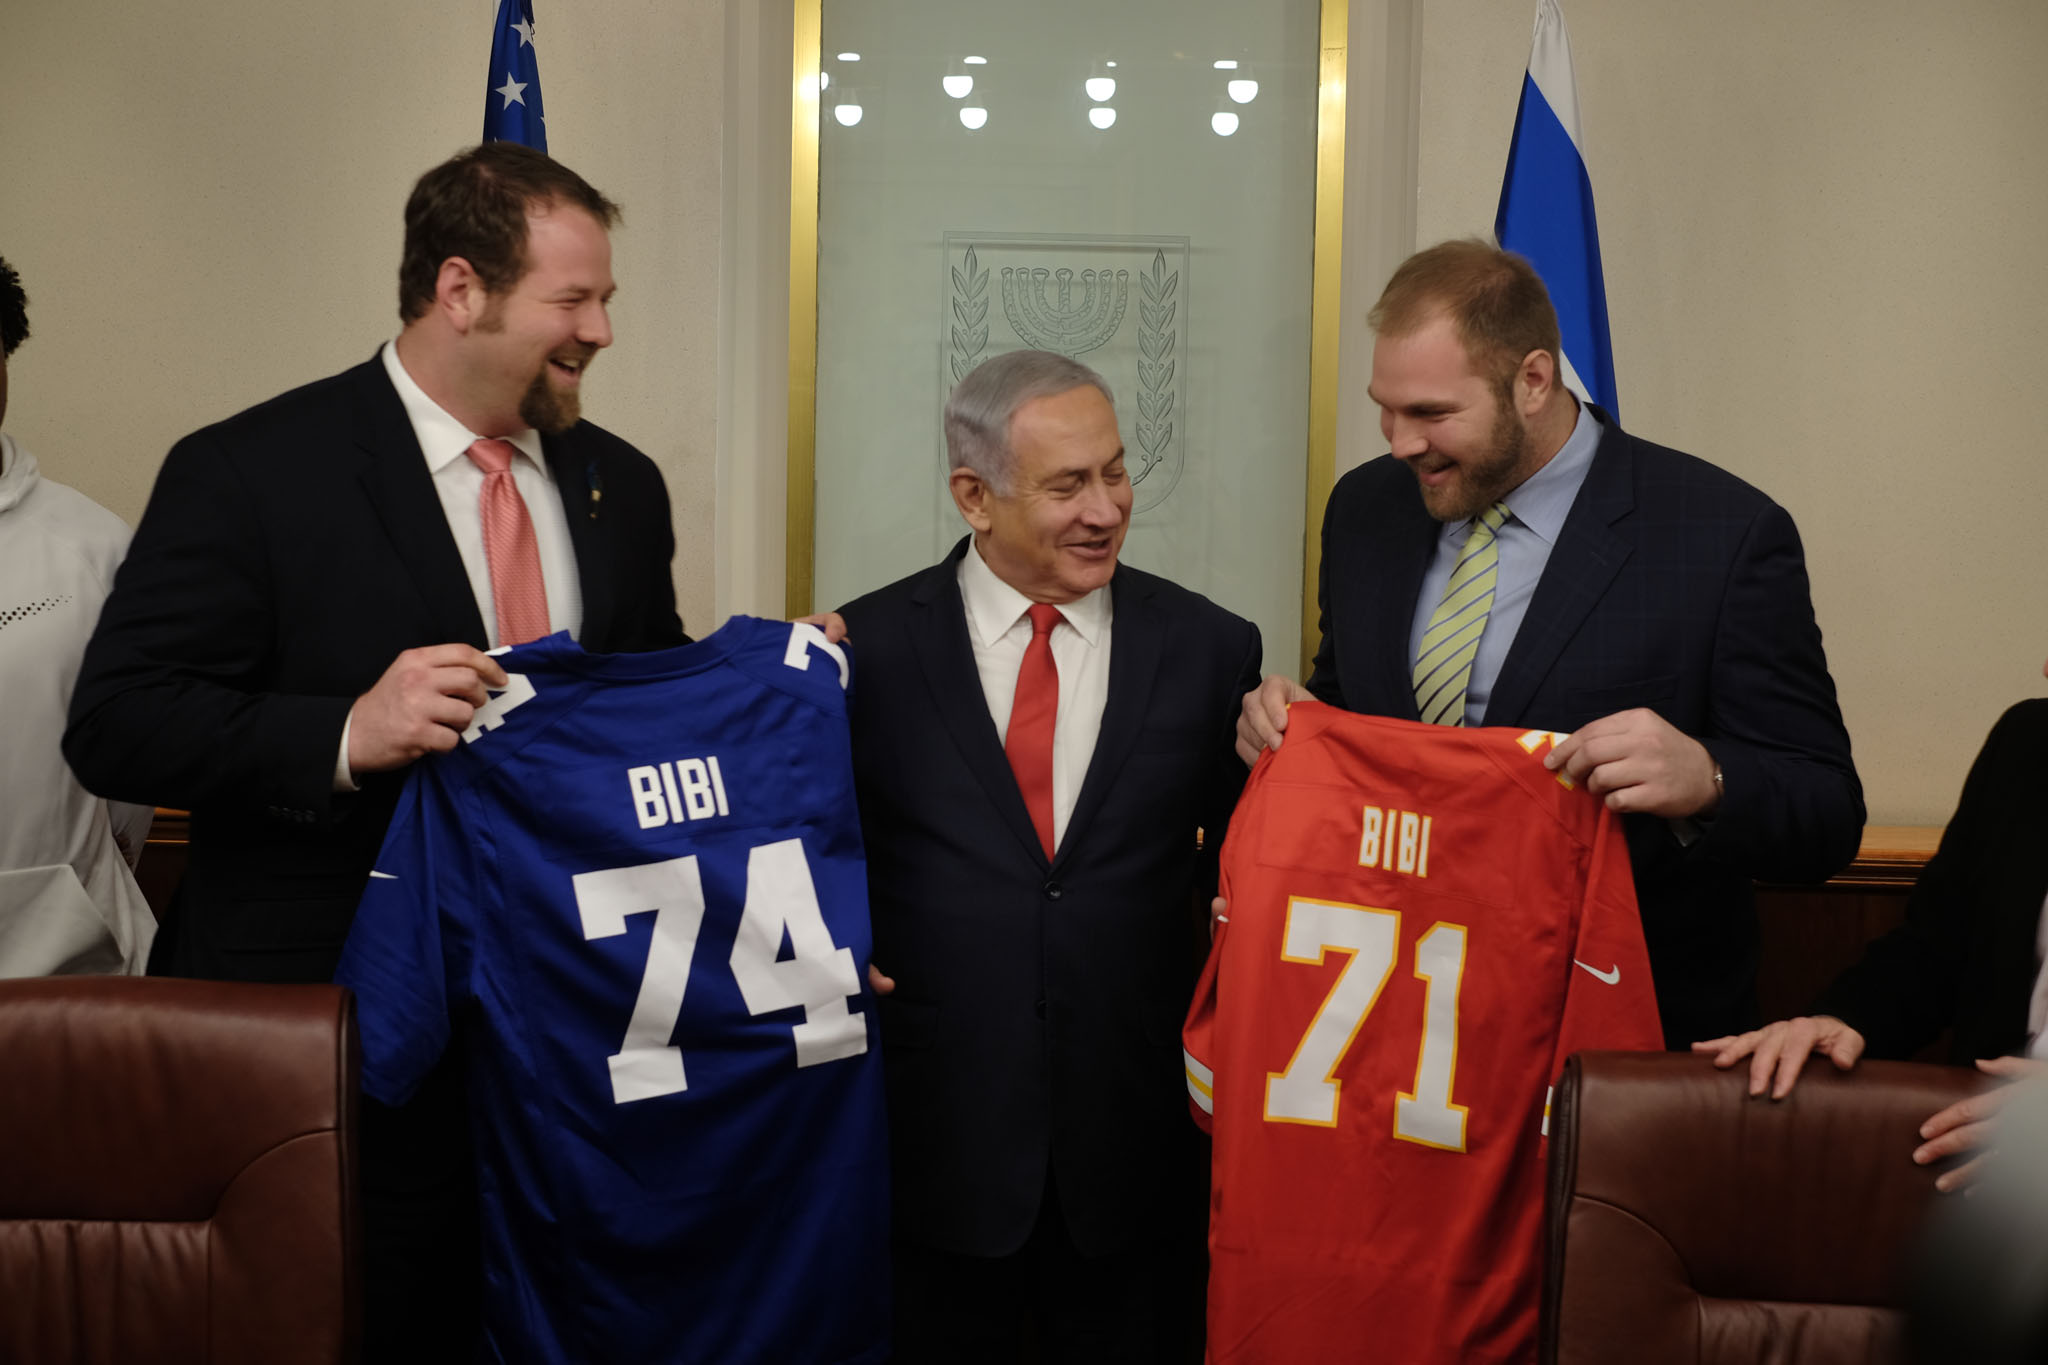 Jewish NFL football players and brothers Geoff (l) and Mitchell (r) Schwartz present Prime Minister Benjamin Netanyahu with football jerseys that have his nickname on them, in his Jerusalem office, on February 19, 2018. (Judah Ari Gross/Times of Israel)